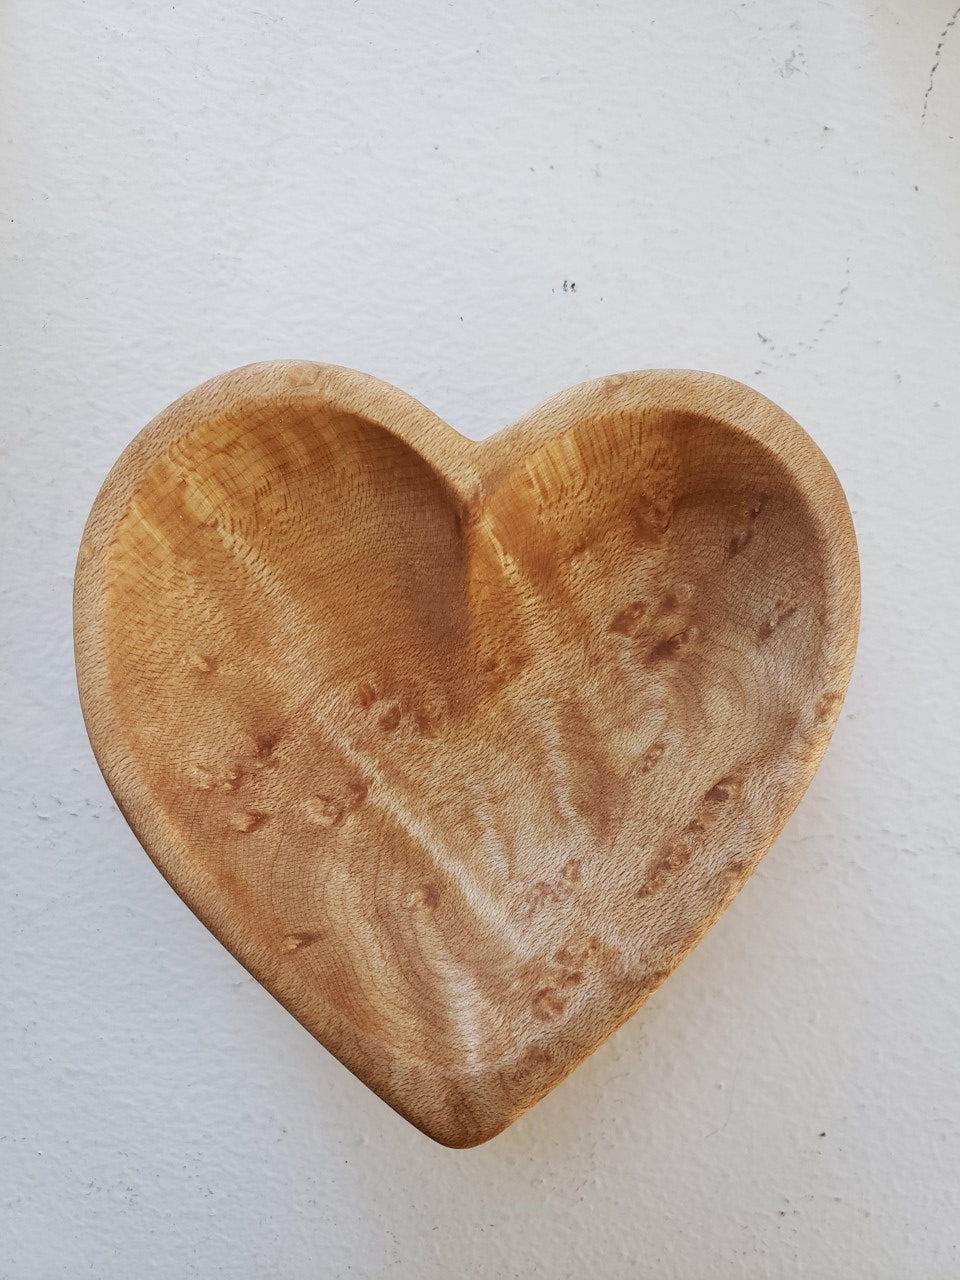 Heart bowl - Birdseye curly maple - small - by Meb's Kitchenwares